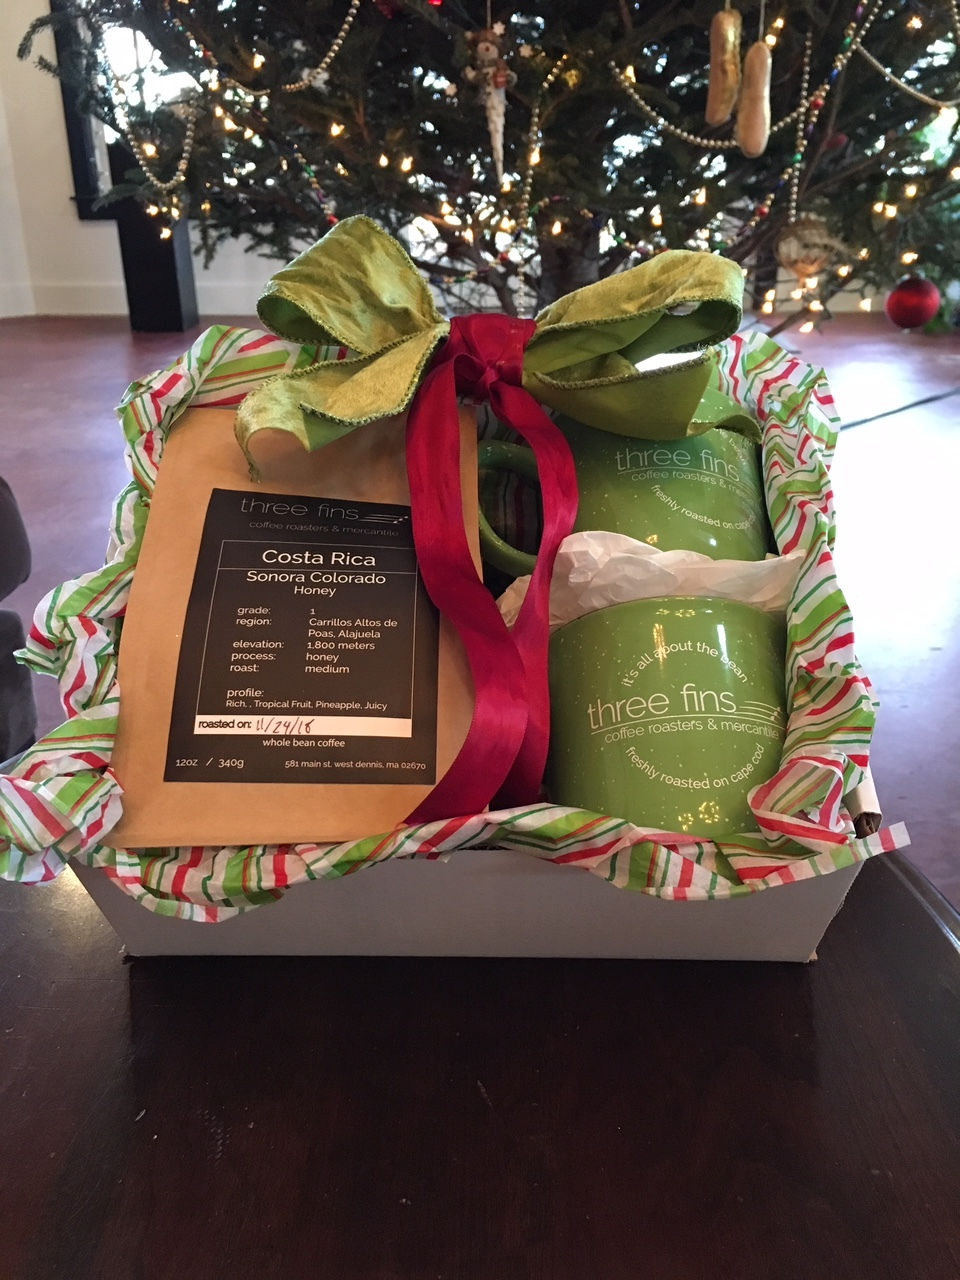 Mix & Match Gift Box $42 includes 2 bags of beans + 2 camper style mugs!